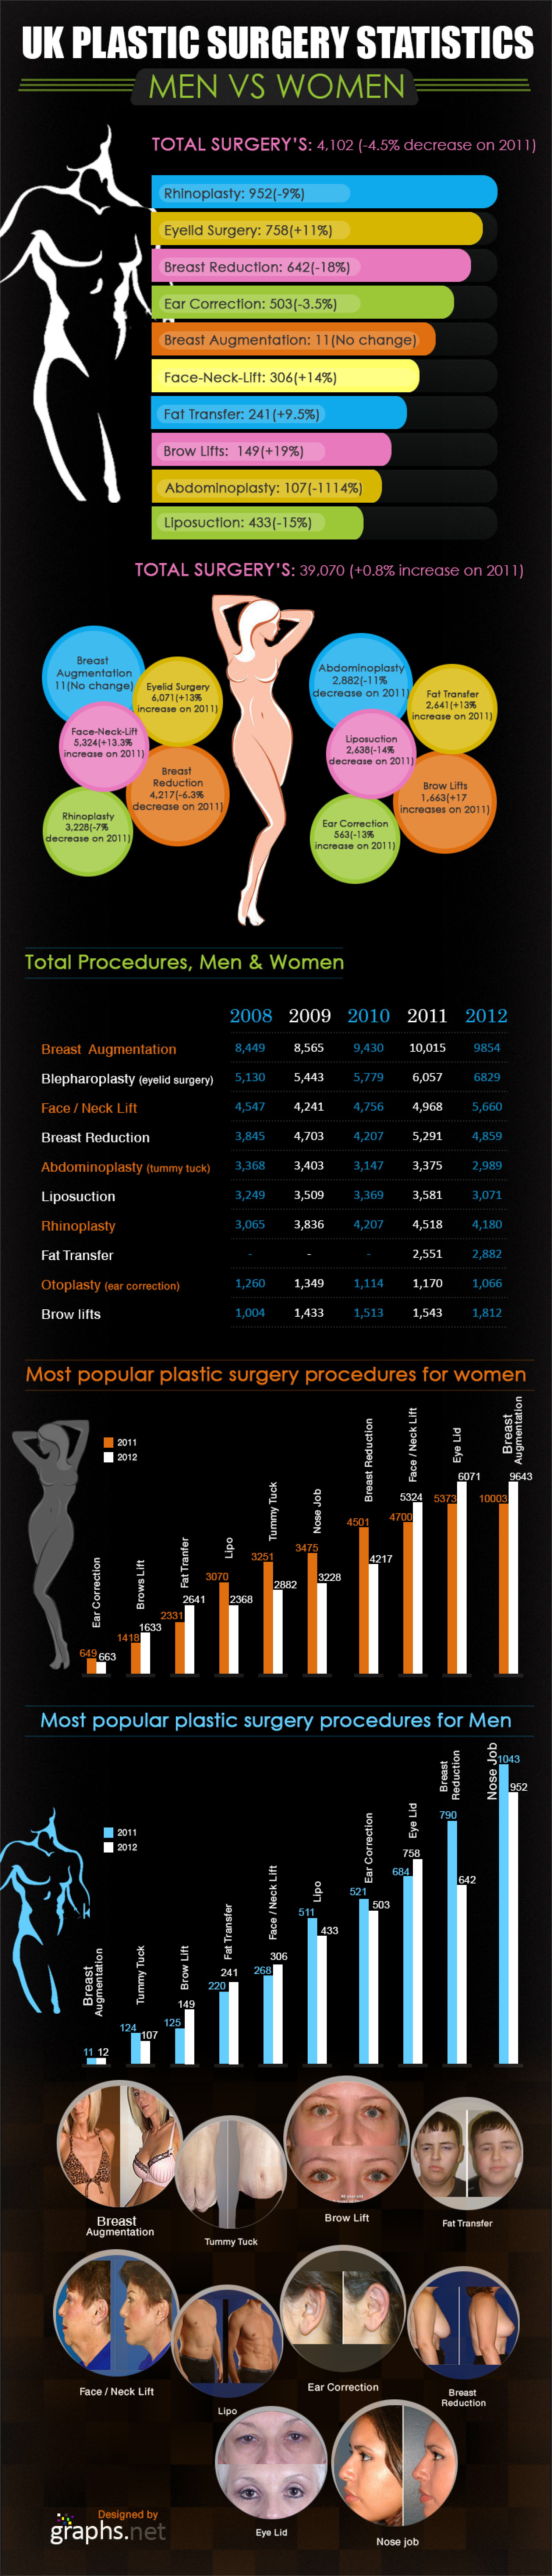 Statistic of Plastic surgery in UK Infographic